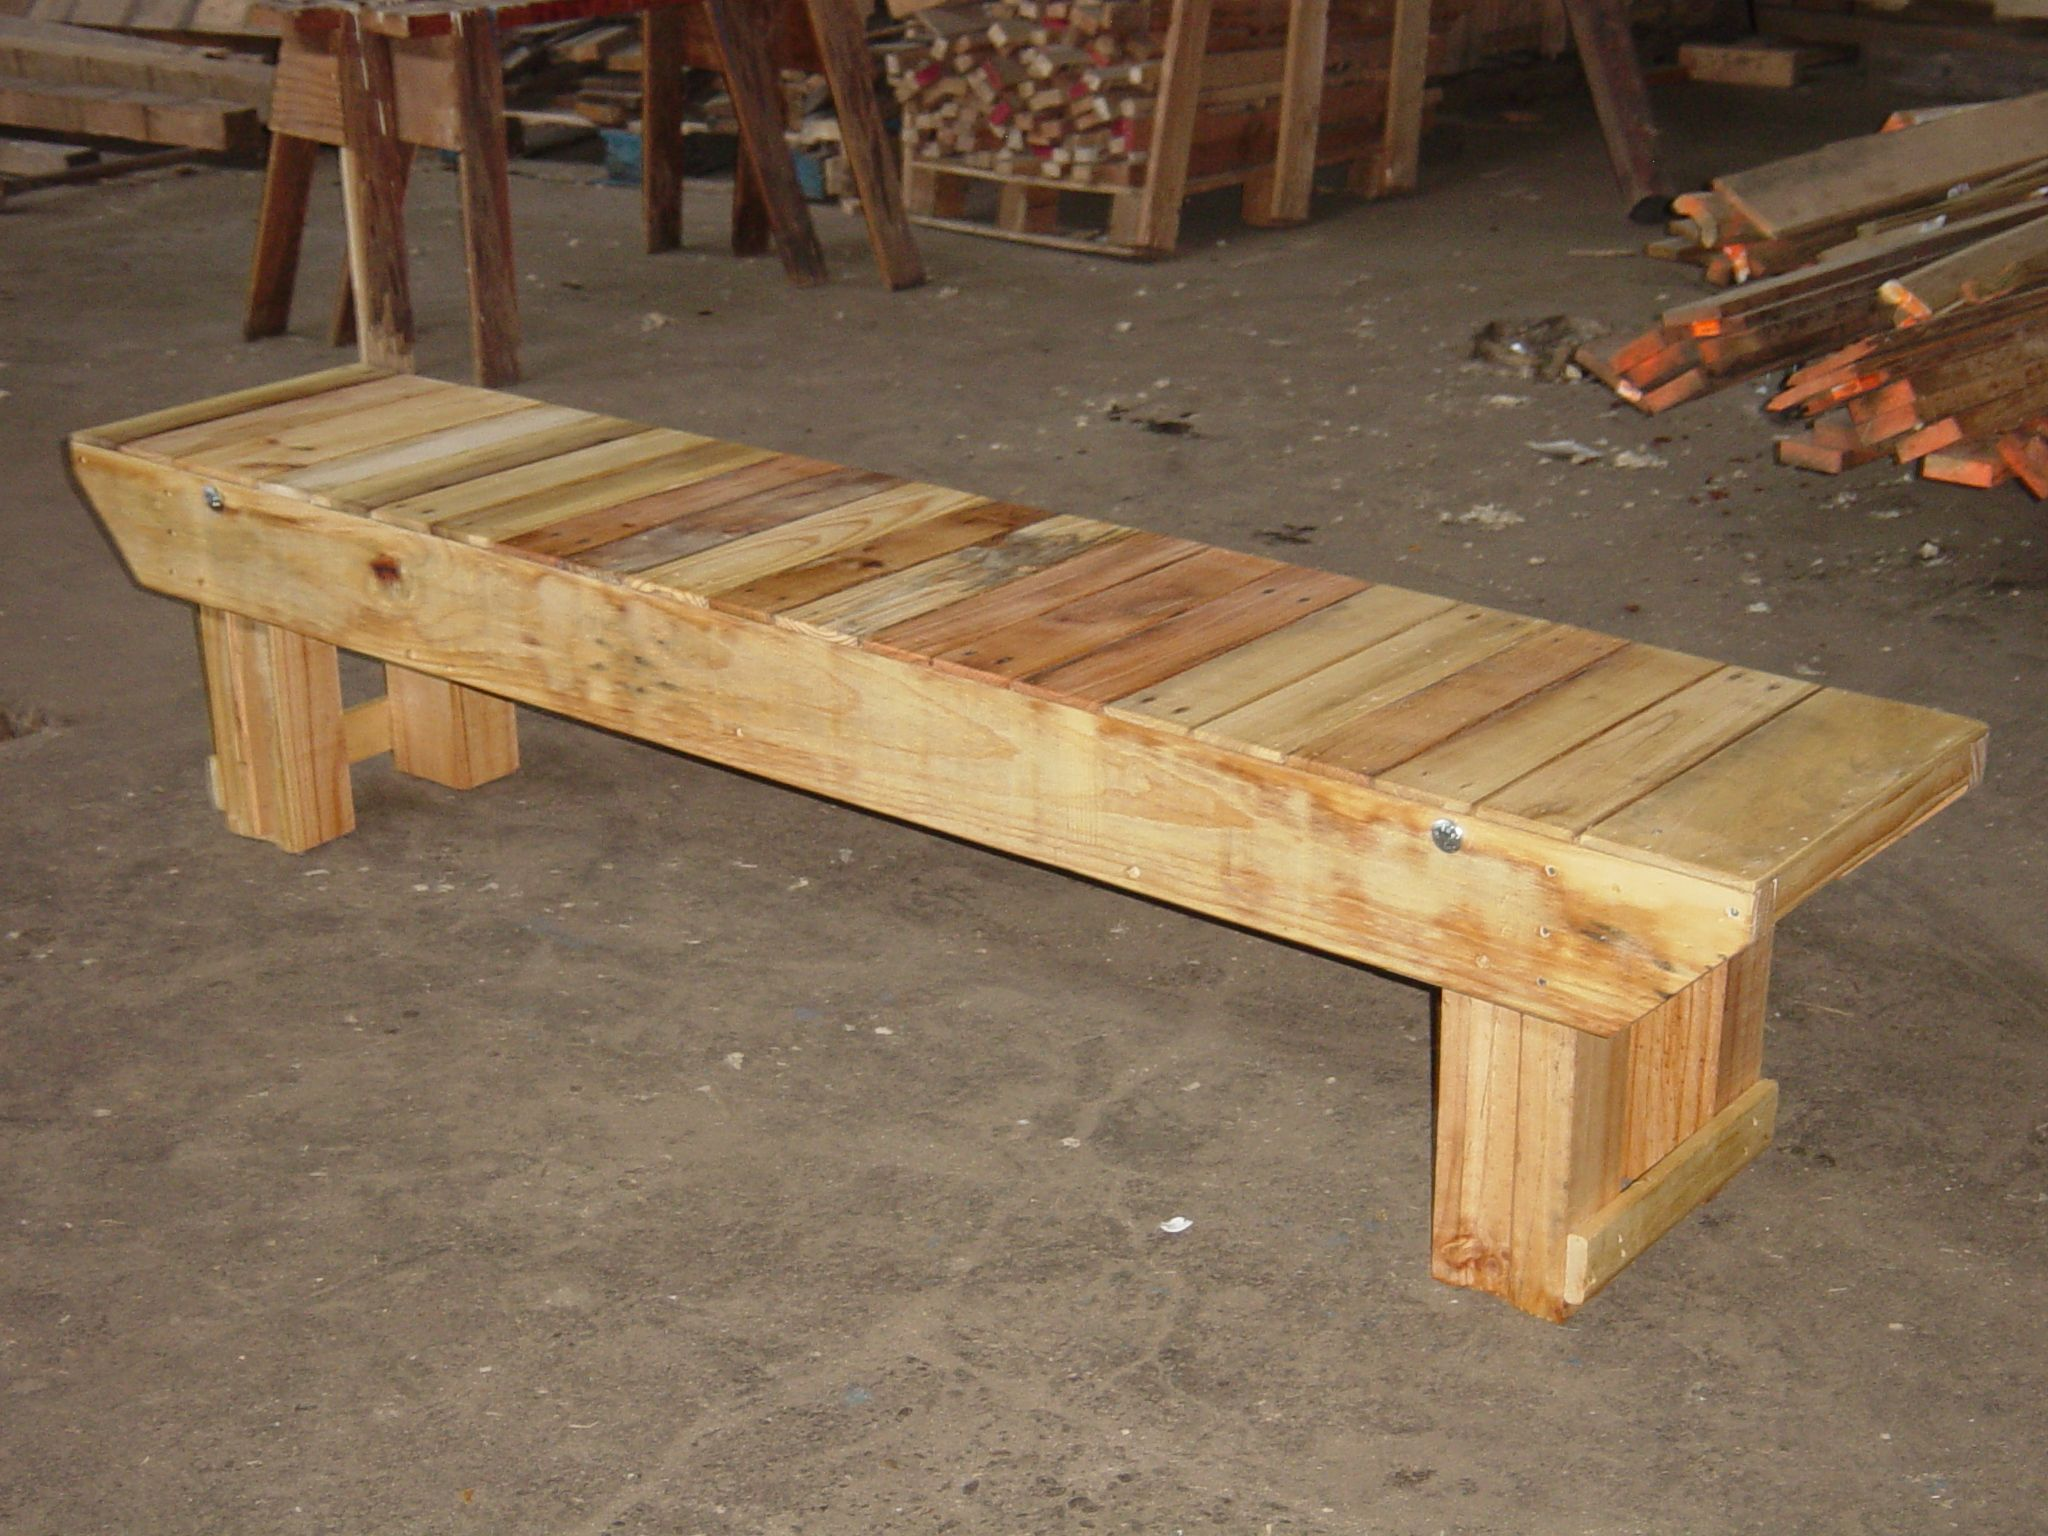 Rustic Wood Country Benches For Sale Or Rent Phila Pa 215 843 Wooden Bench Indoor Wooden Bench Plans Wooden Benches For Sale